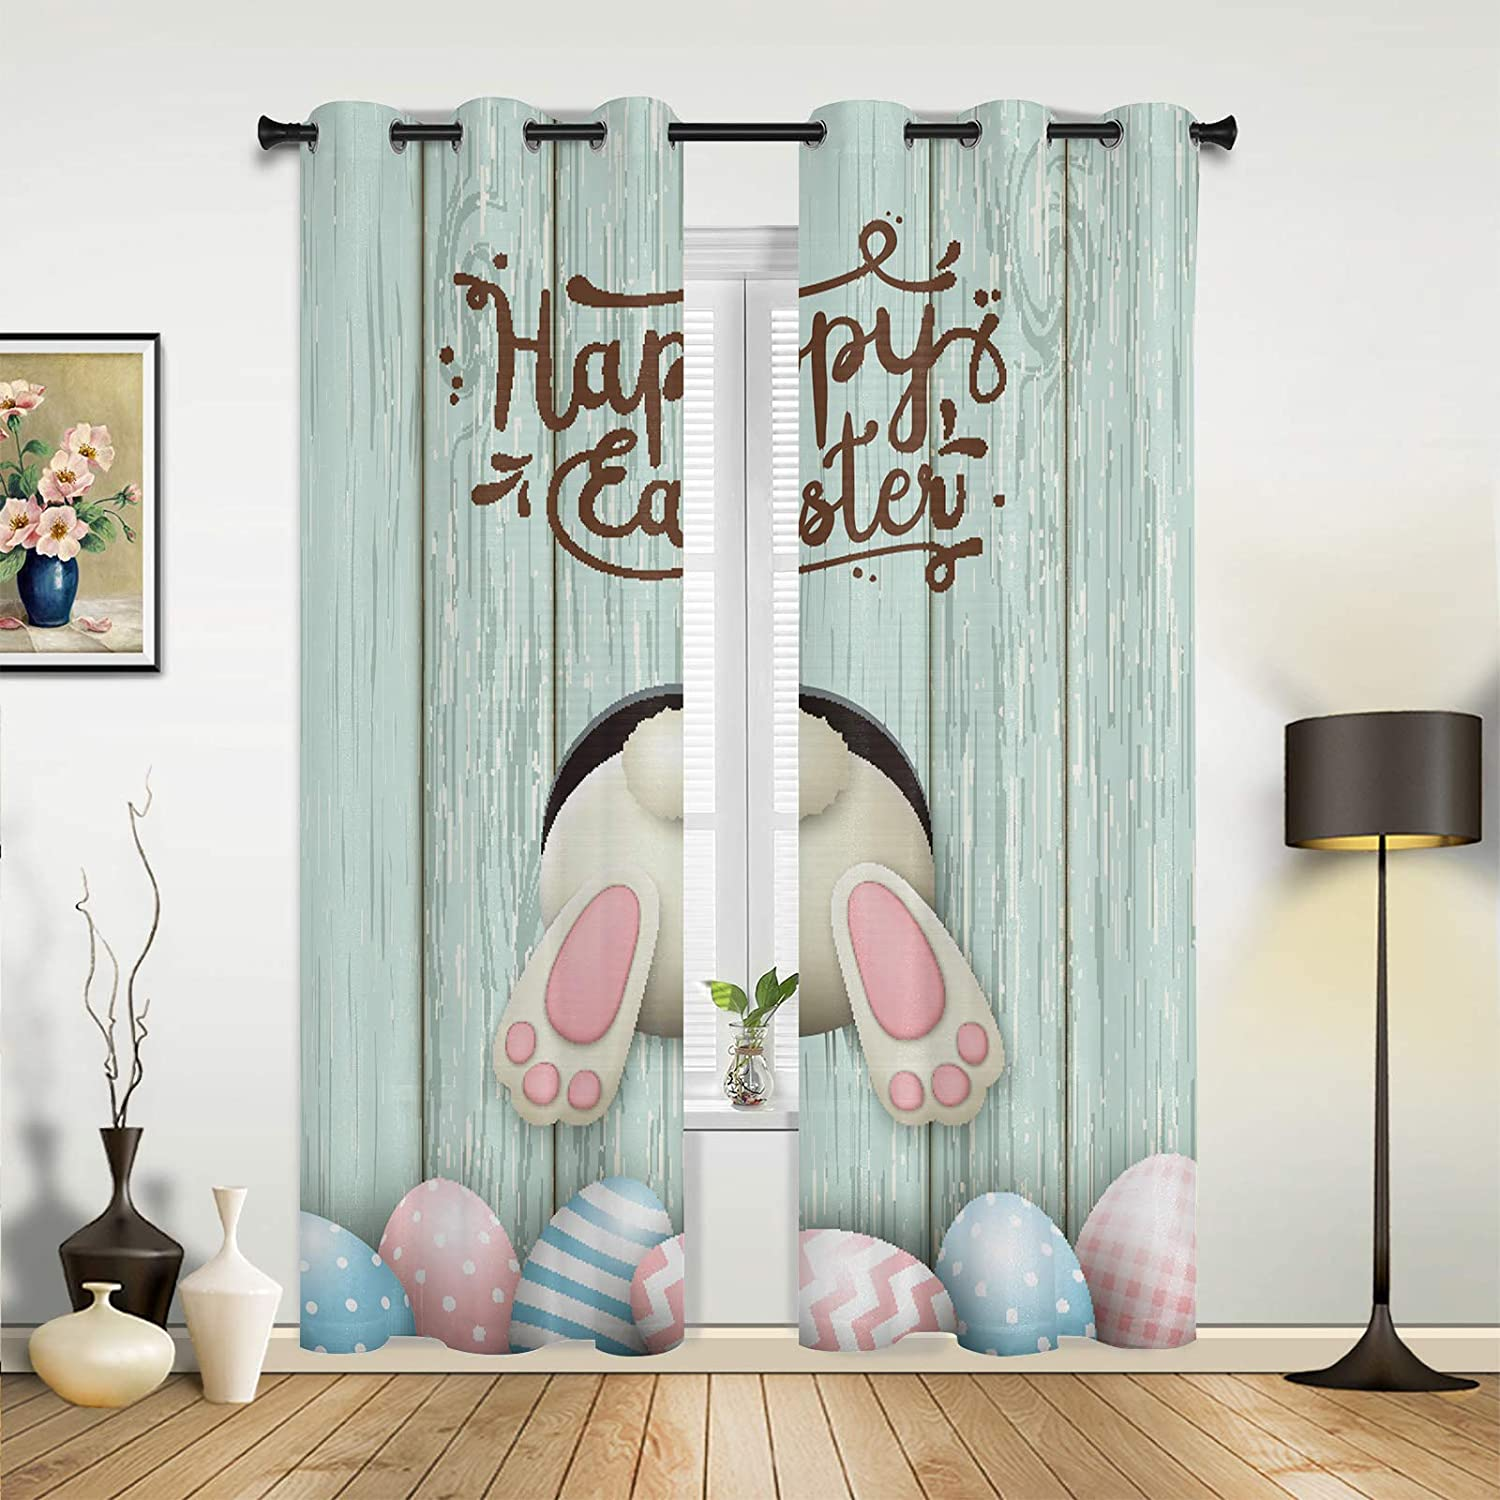 Window Curtains Bargain sale Drapes Panels Happy Bunny Cute Easter Funny Bargain sale Butt